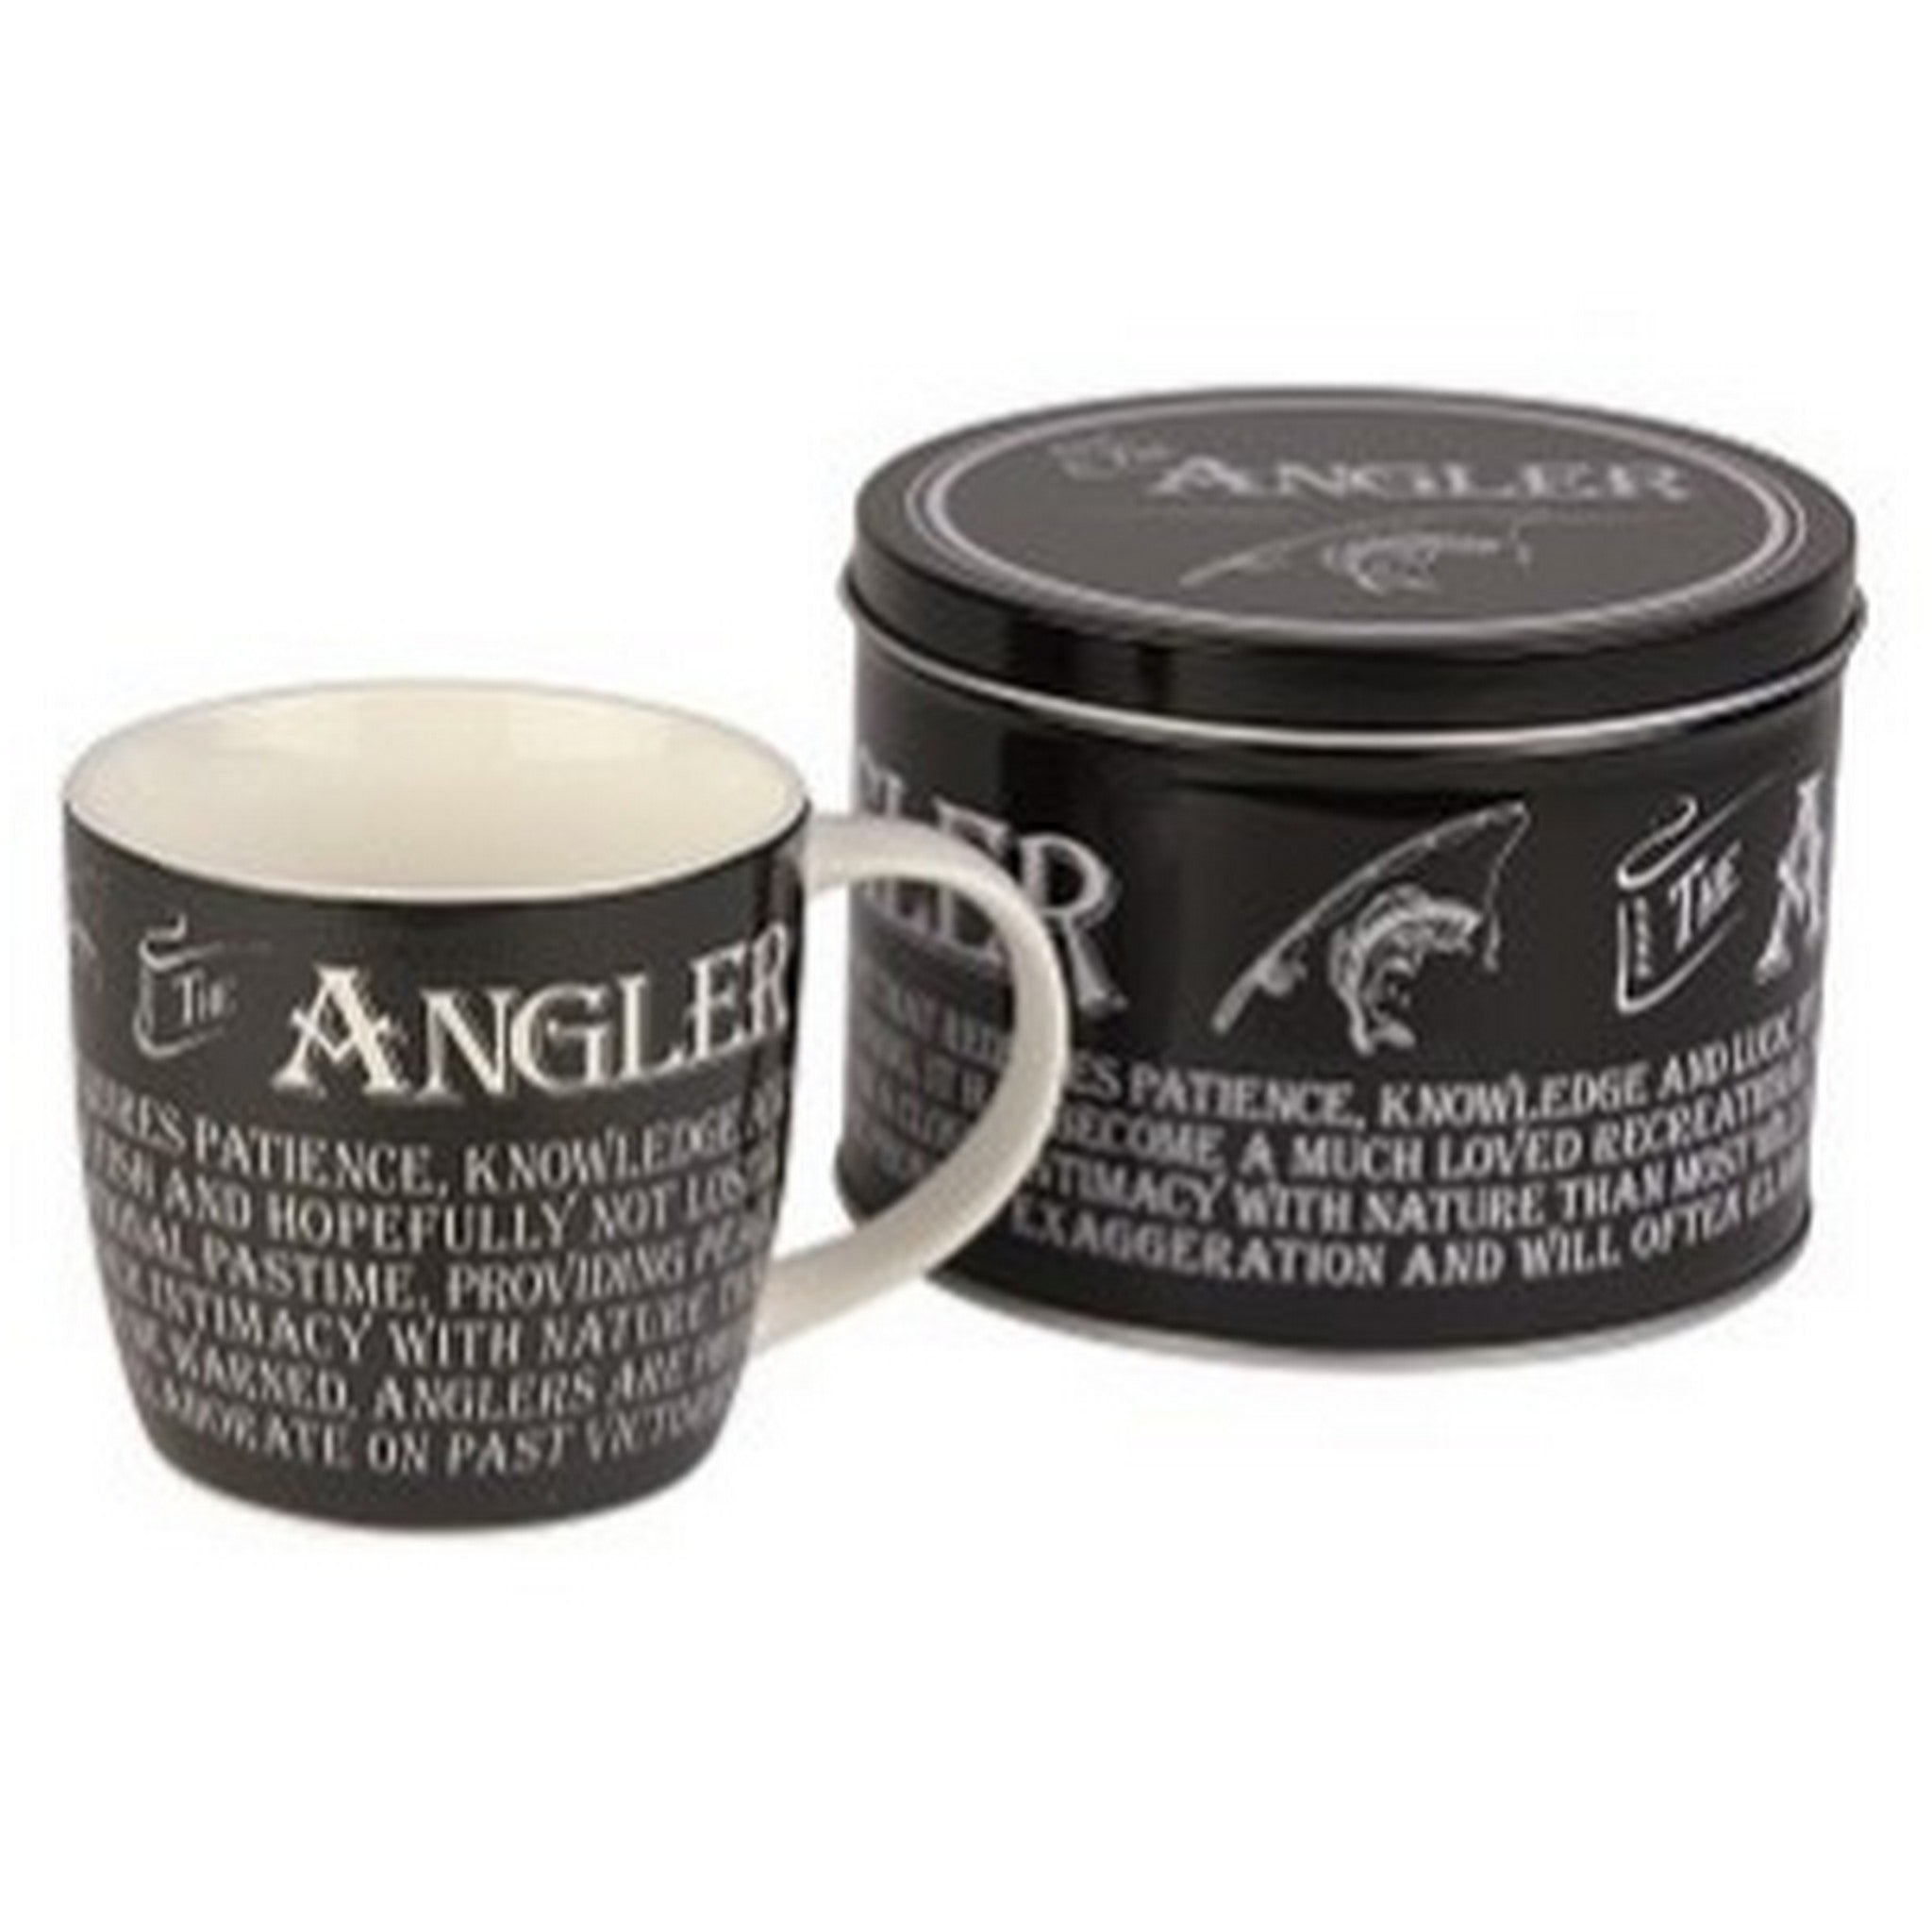 """The Angler"" Mug in a Reusable Gift Tin"